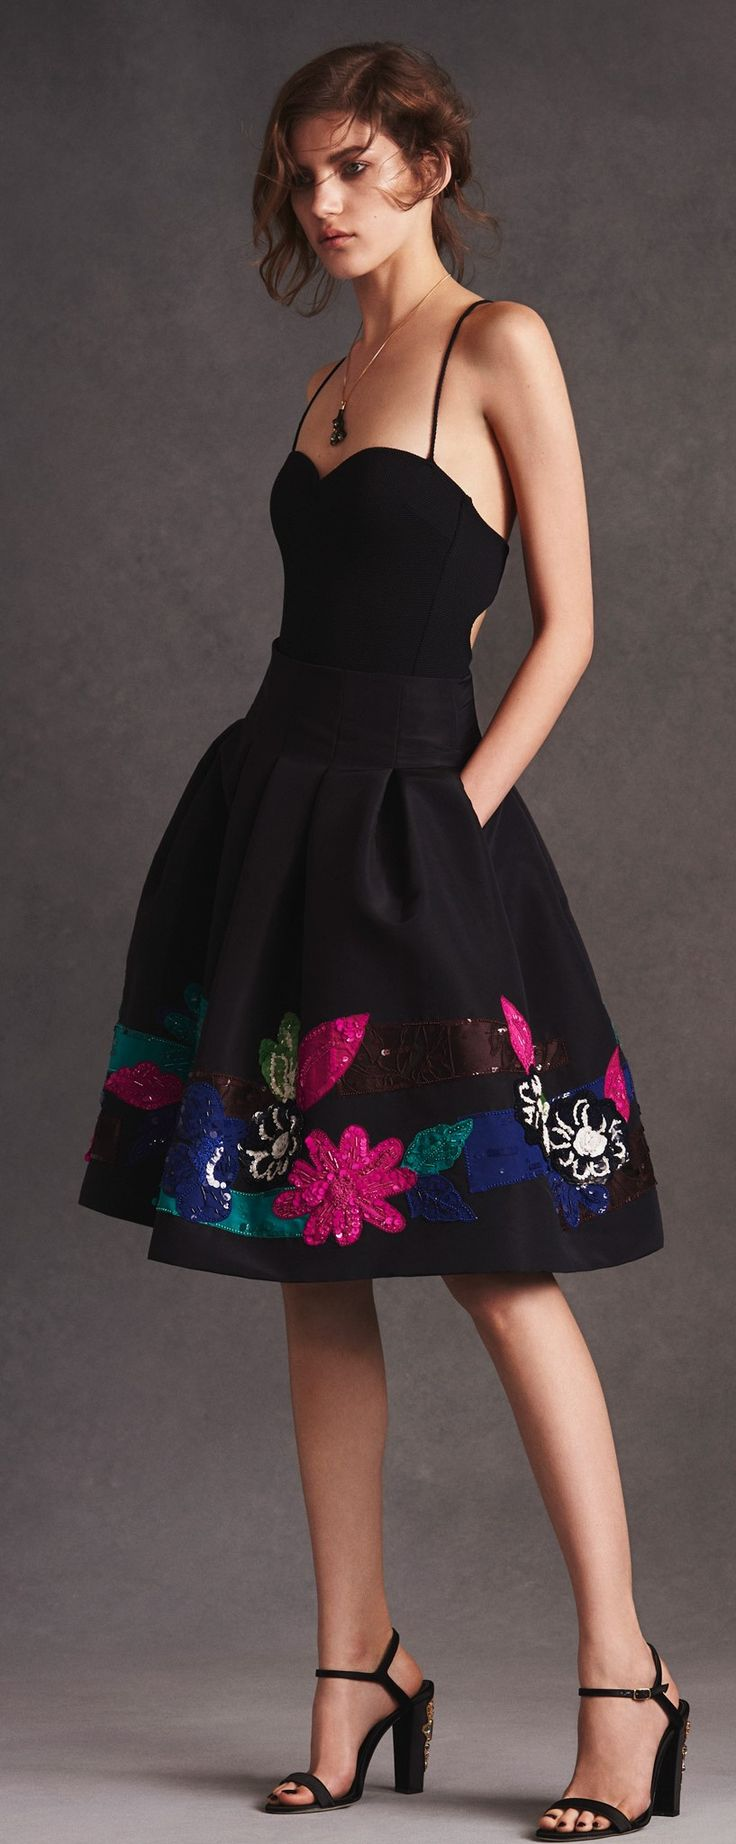 Love the length of skirt and long torso...black with pops of color are great too!